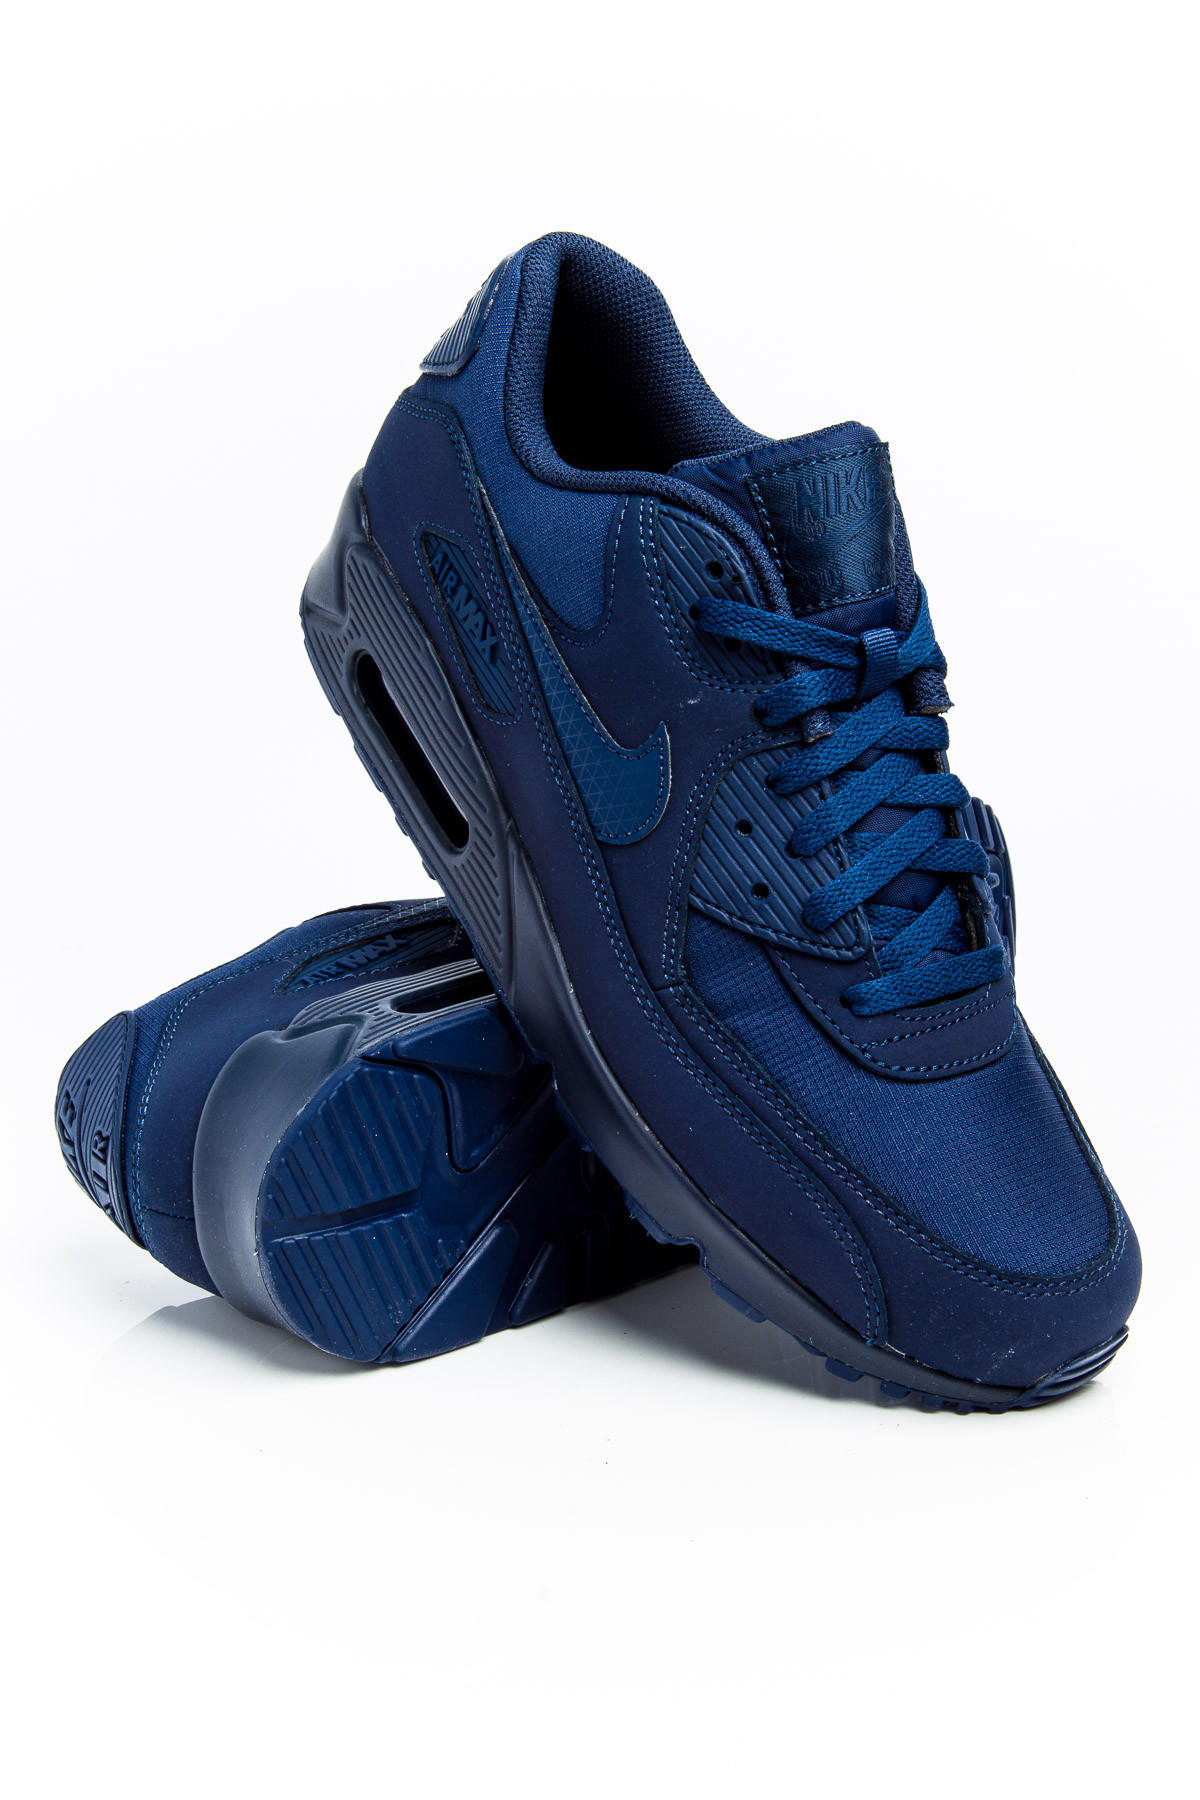 Nike Air Max 90 Essentail Midnight Navy from Probus  85bcee848